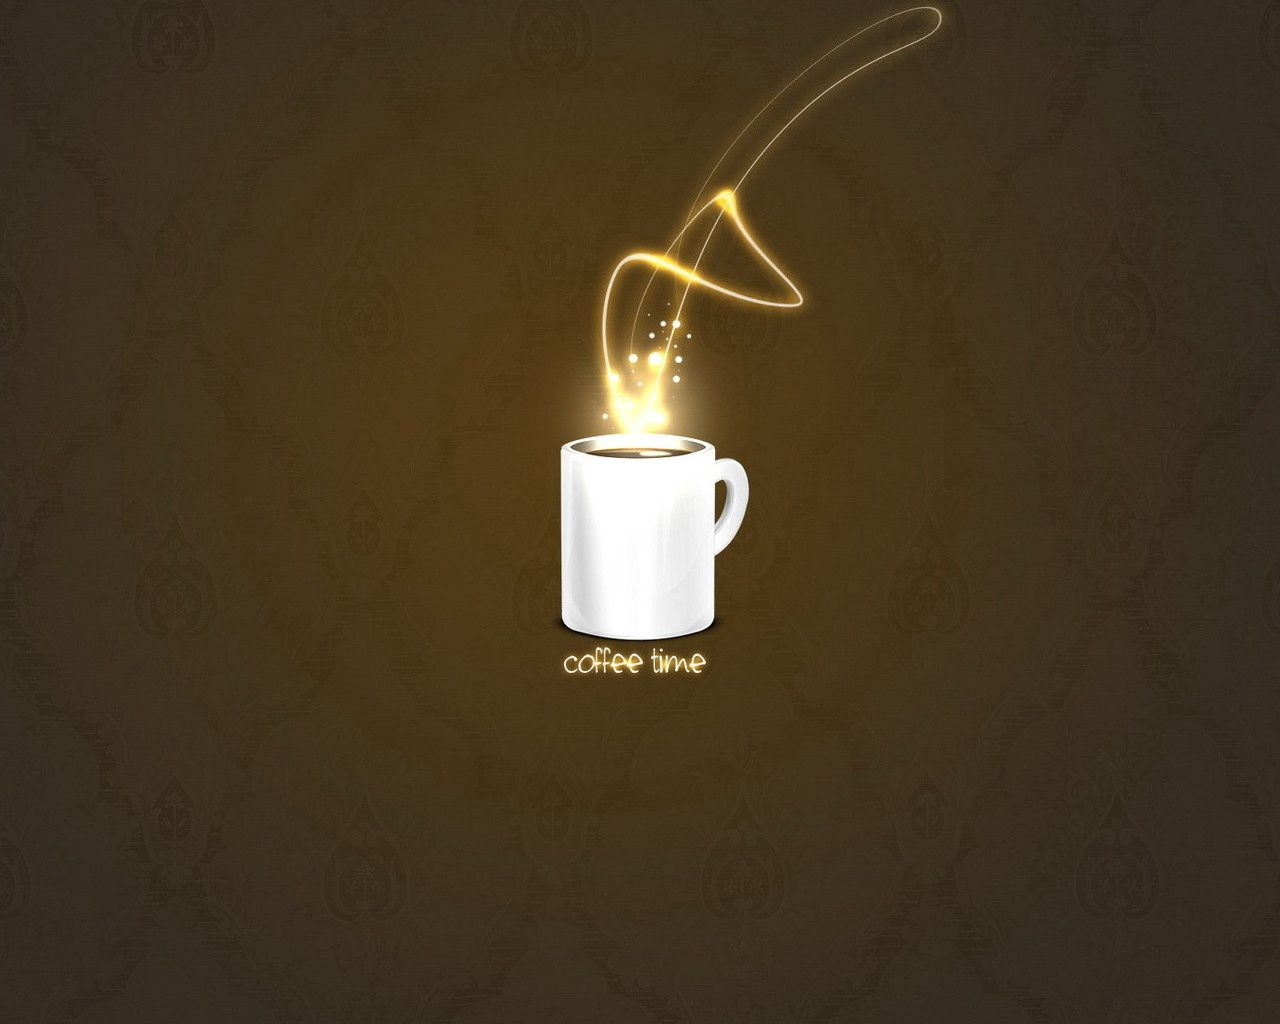 98783 download wallpaper Vector, Coffee, Brown, Cup, Abstract screensavers and pictures for free